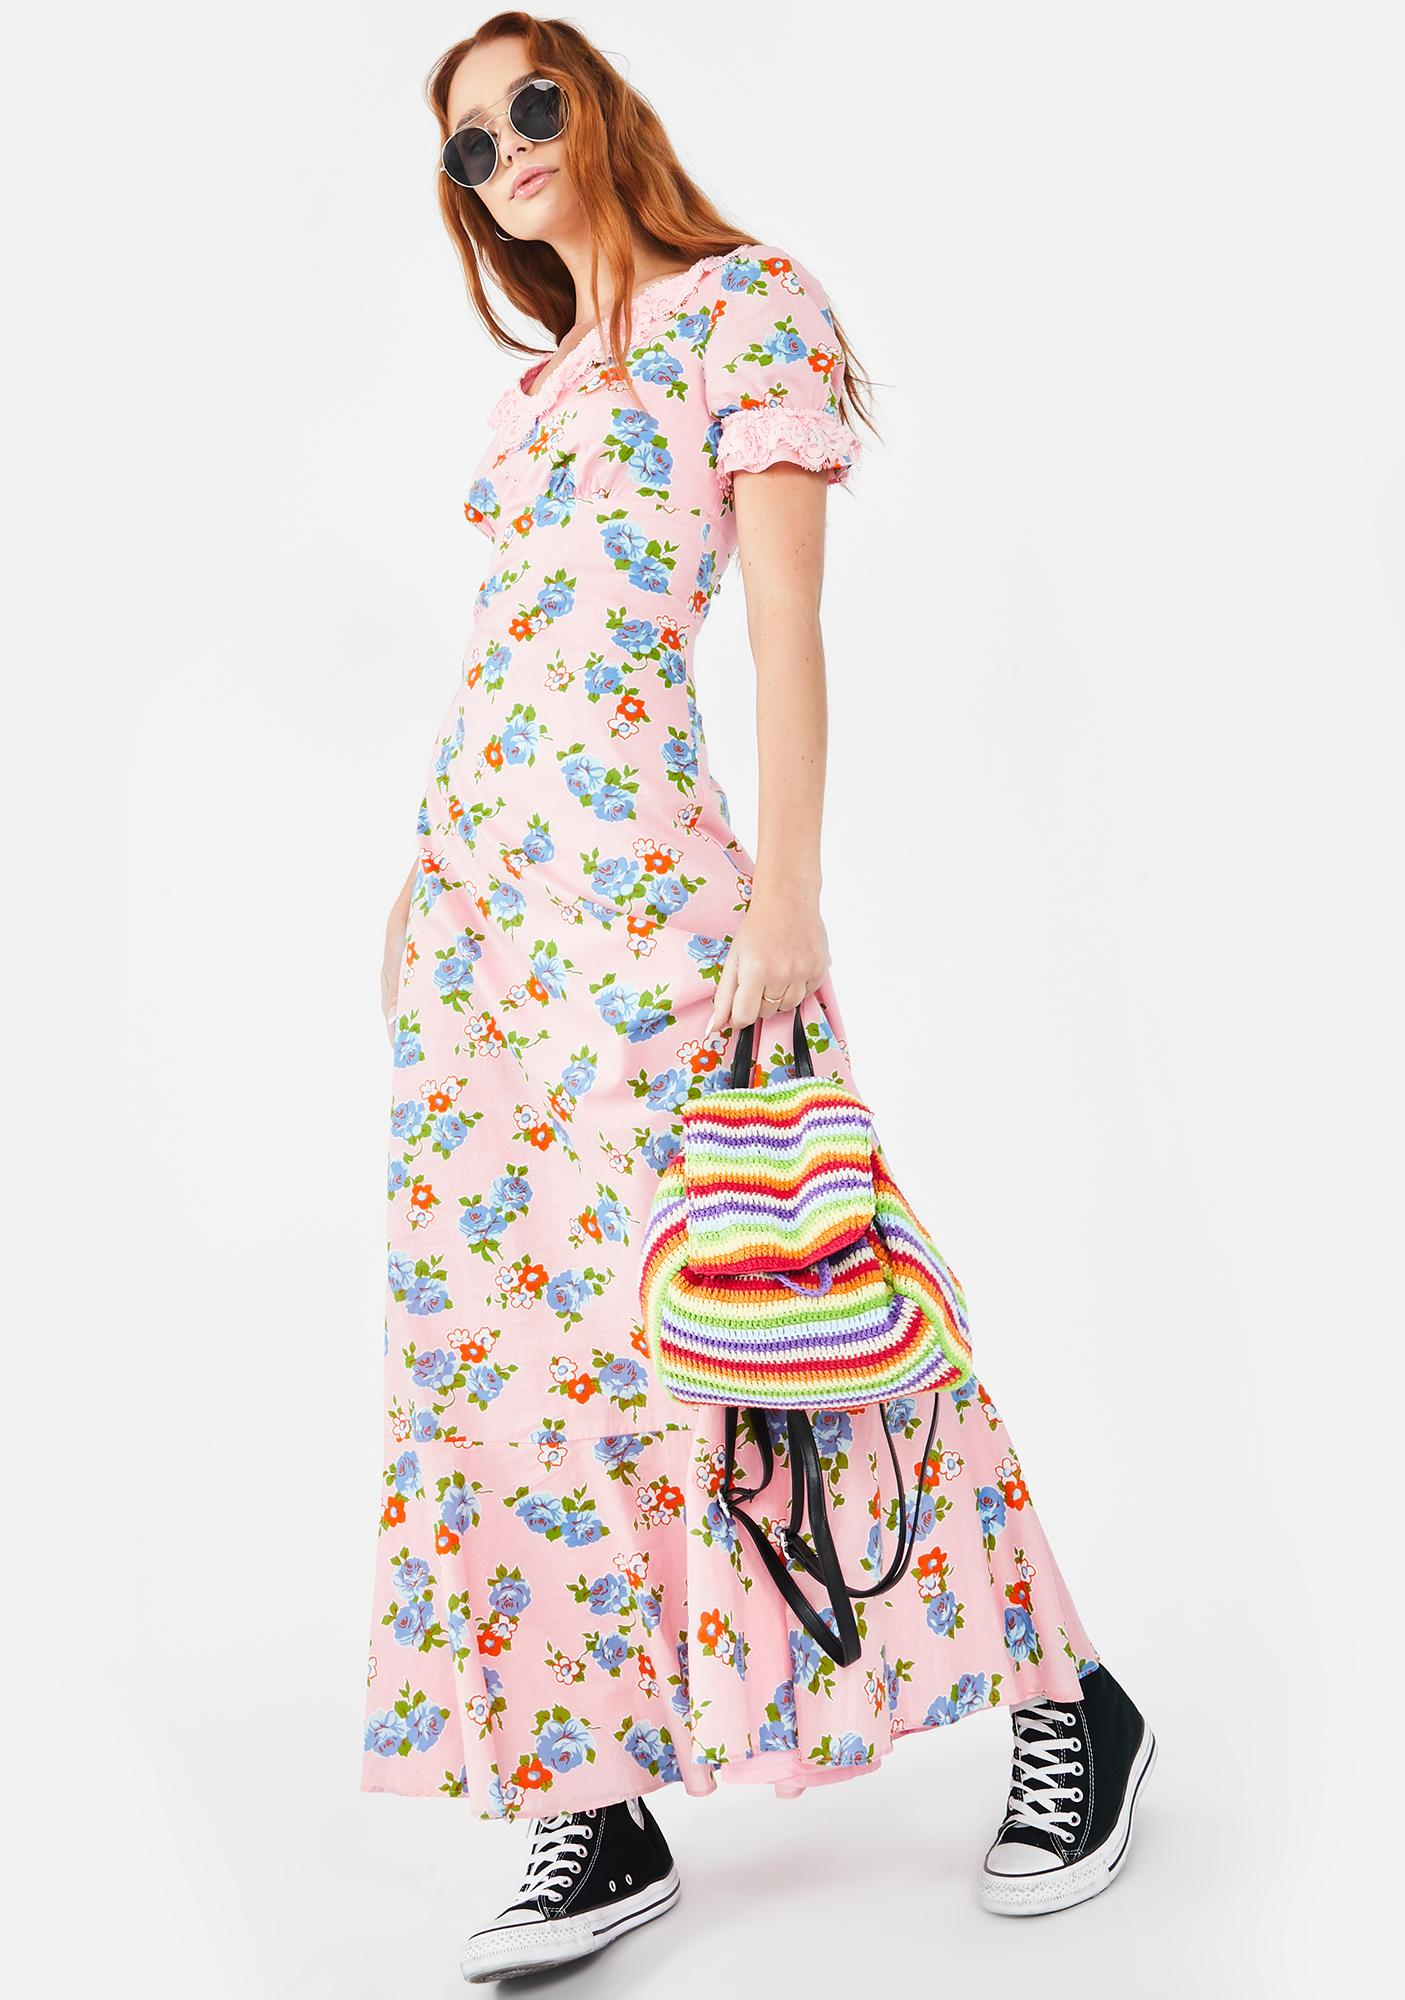 Molly Bracken Woodstock Flower Maxi Dress